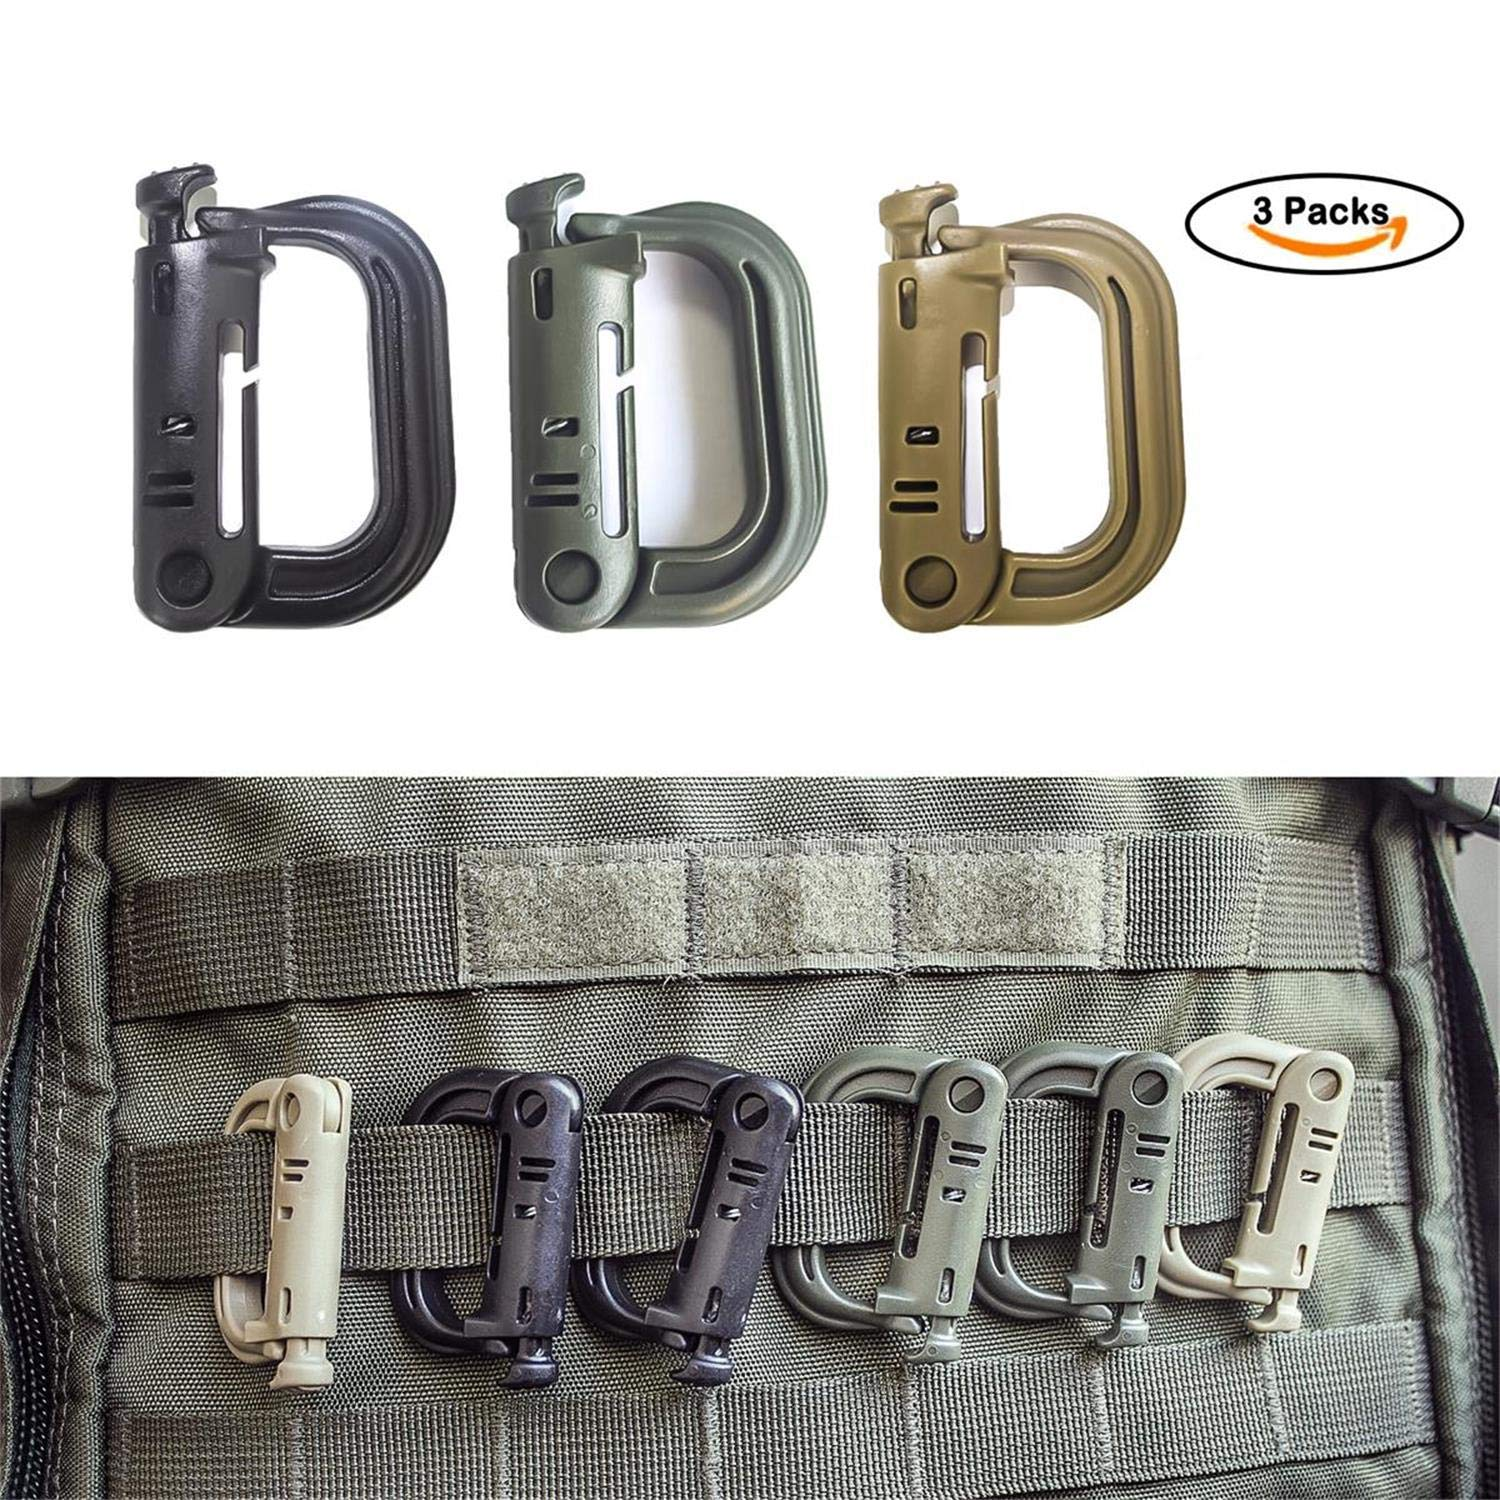 Akmax.cn Multipurpose D-Ring Locking Hanging Hook Tactical Link Snap Keychain Button Release Molle Clip for Tactical Bag,Backpack(3Packs)